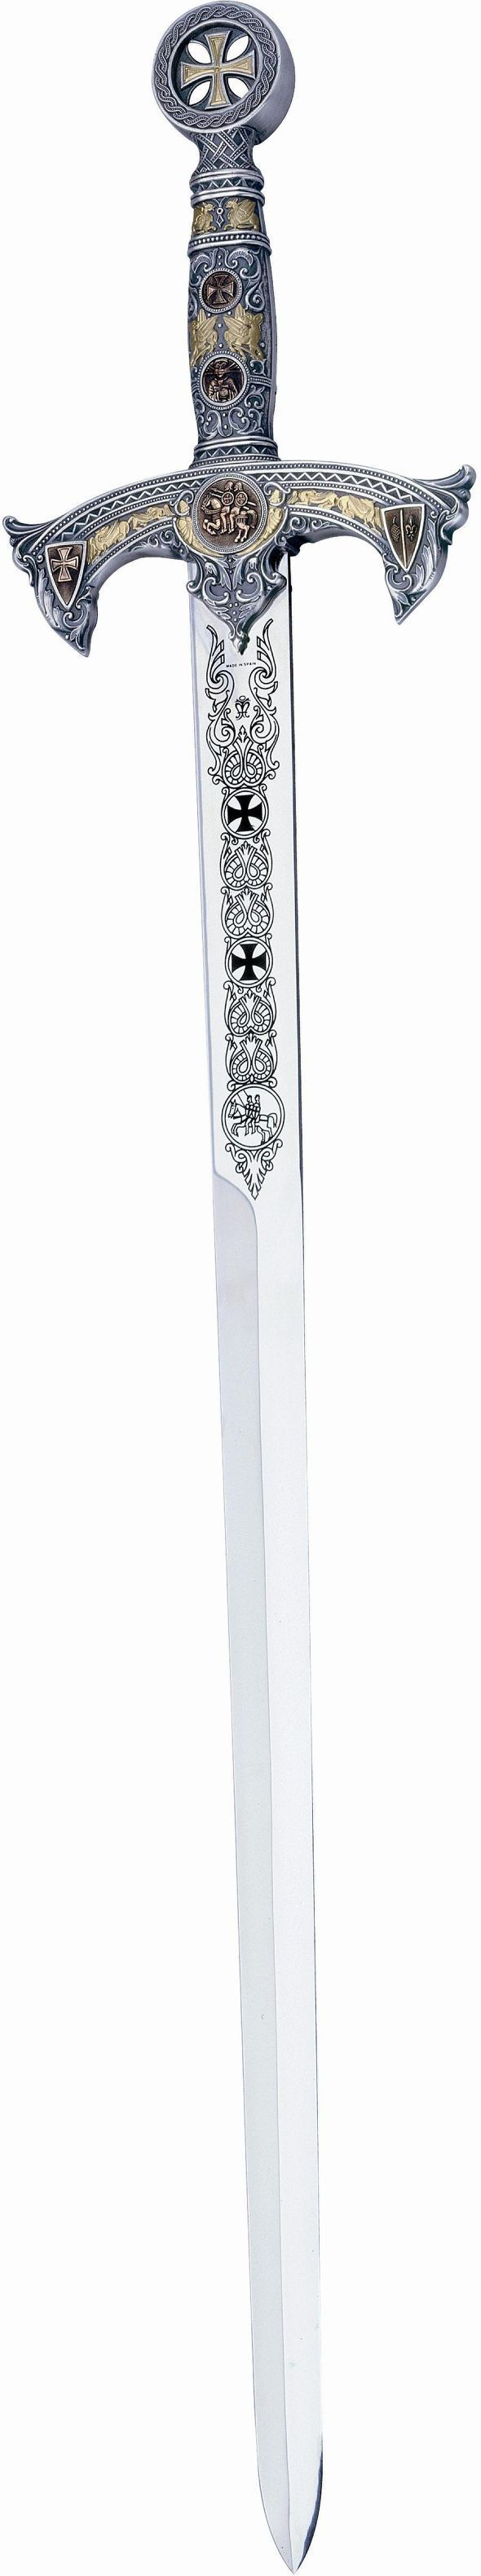 imagesofswords | Deluxe Medieval Templar Knight Swords by Marto of Spain - Best ...